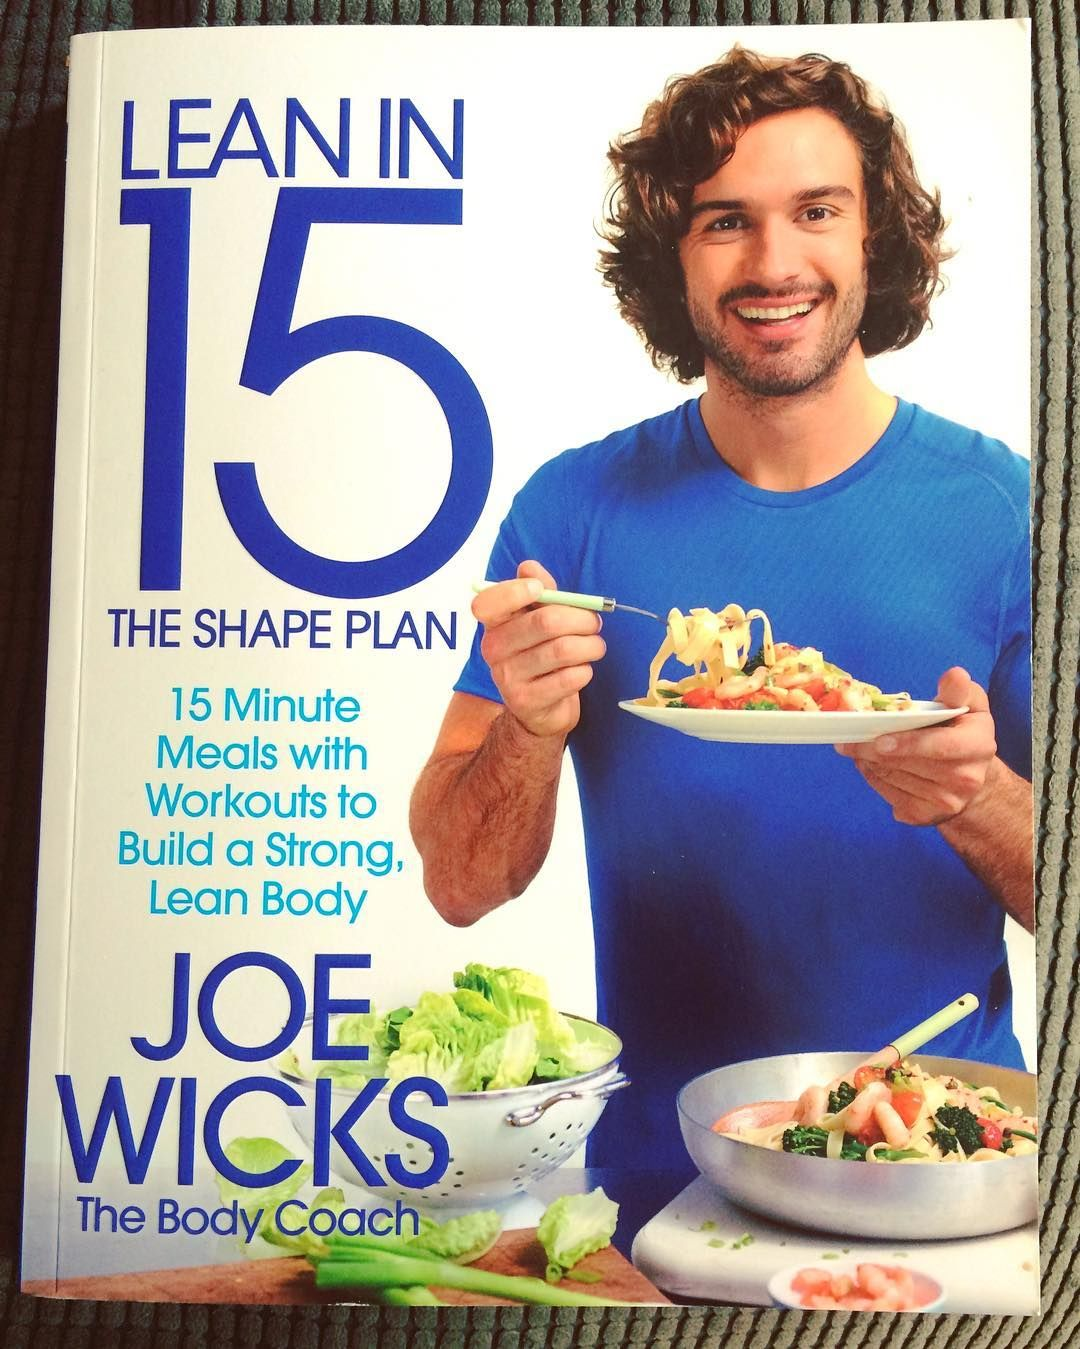 Look what my awesome boyfriend got me to cheer me up. Most men get you flowers but he knows me sooo well.  #leanin15 #thebodycoach #cleaneating #HHYprogram #shape #toneitup #tone #weightloss #healthy #fitness #fit